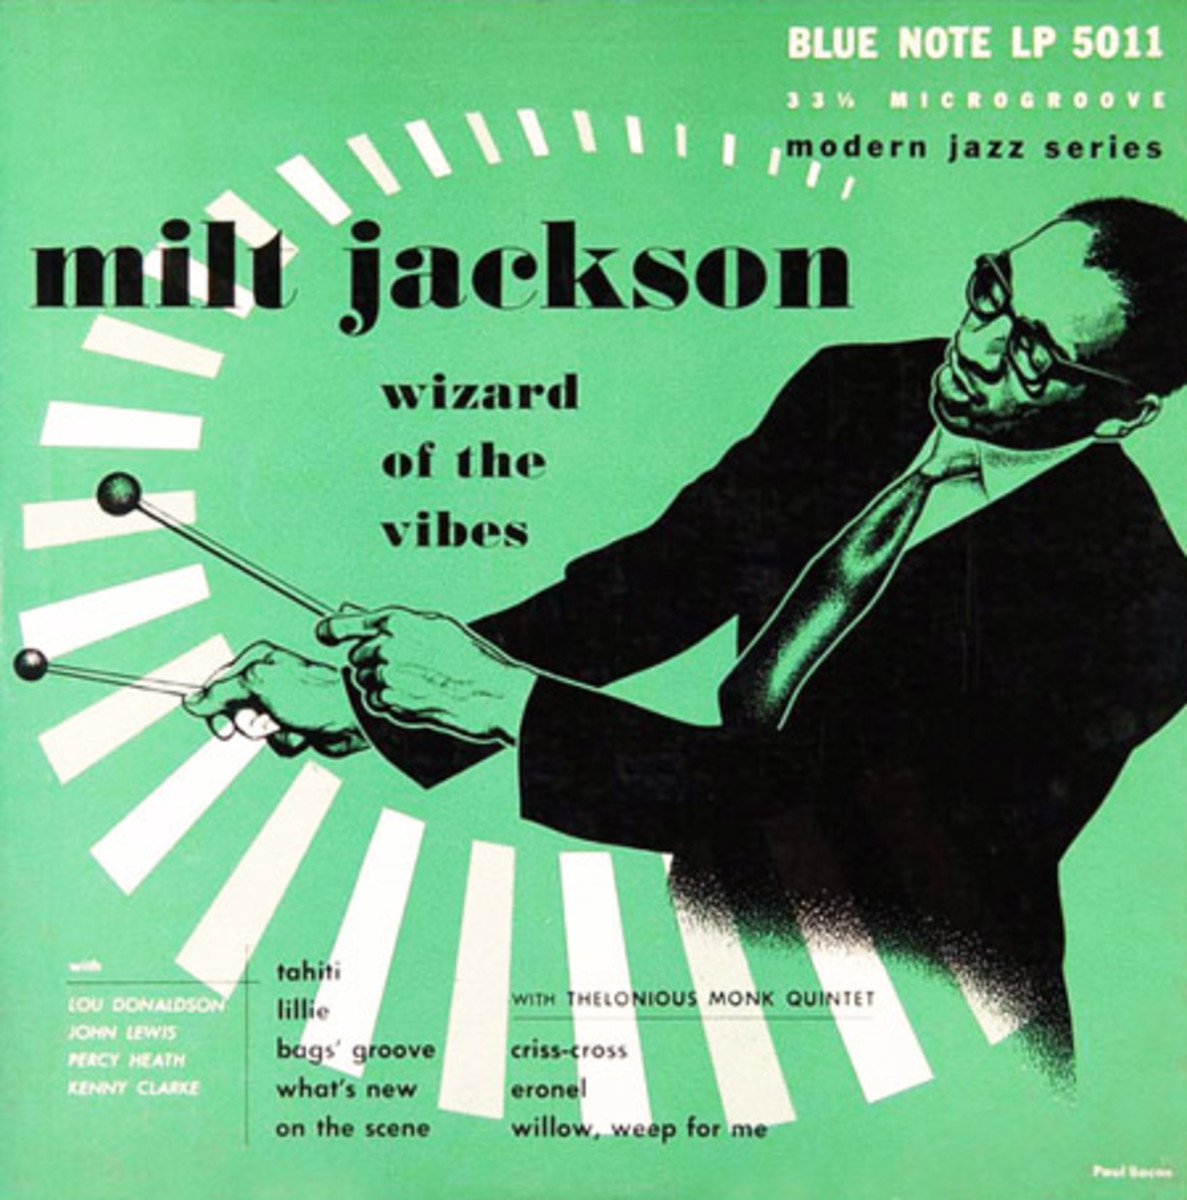 """Milt Jackson """"Wizard of the Vibes"""" Blue Note Records BLP 5011 10"""" LP Vinyl Record (1952) Album Cover Art by Paul Bacon"""